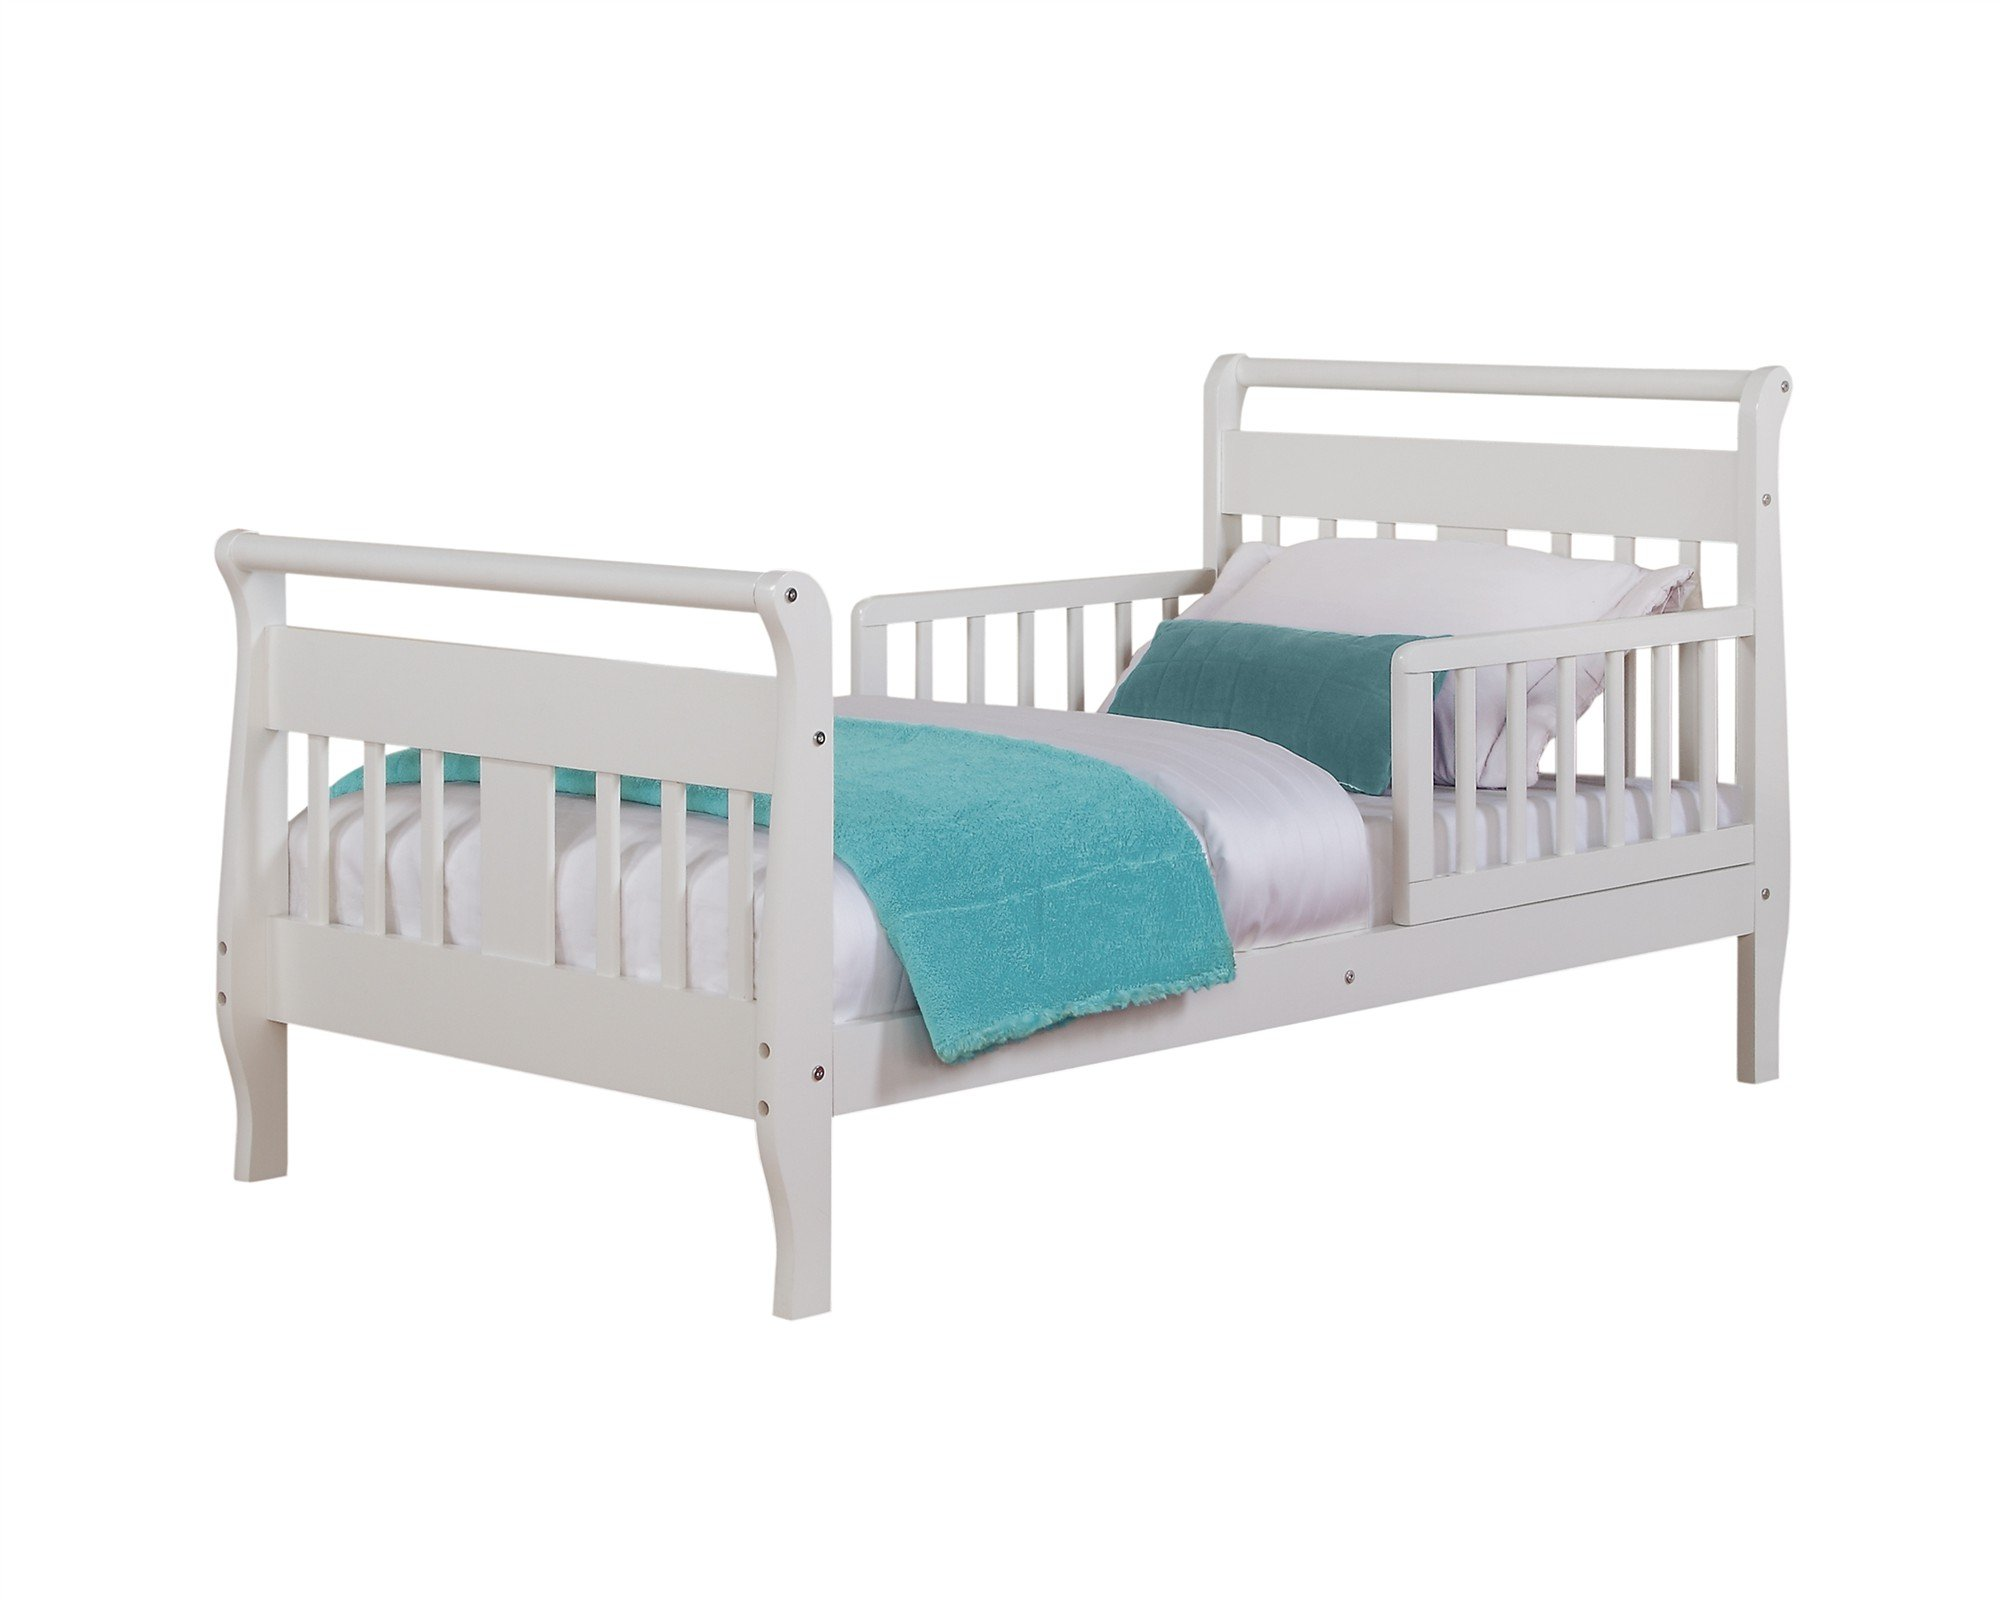 Baby Relax Sleigh Toddler Bed WHITE WM1646RW